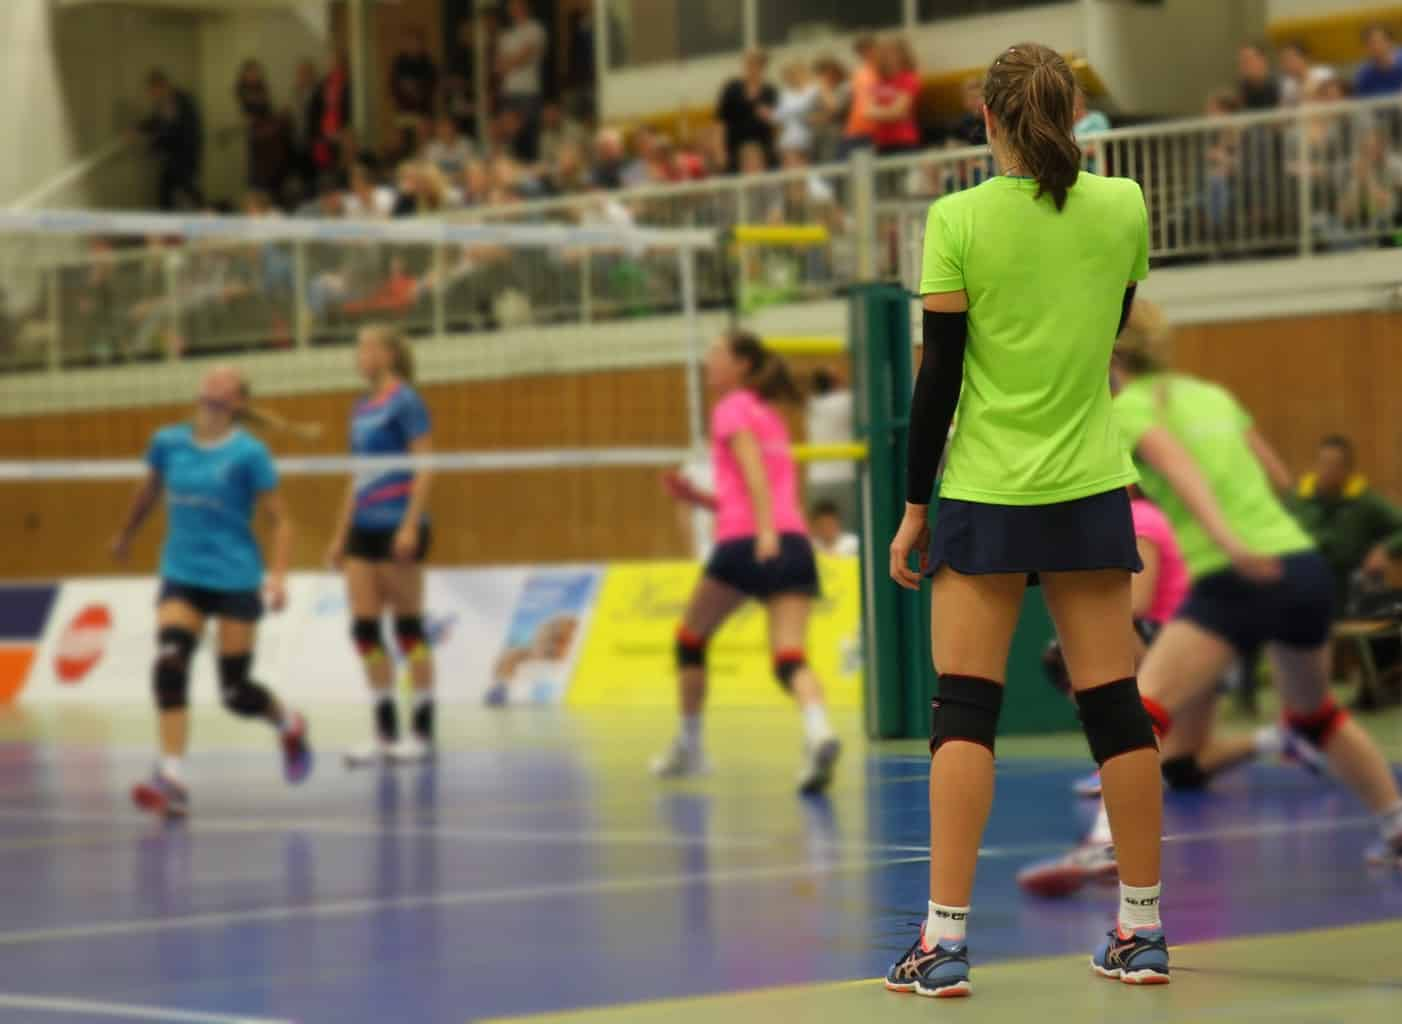 Girl in green stands infront of a volleyball court during a match